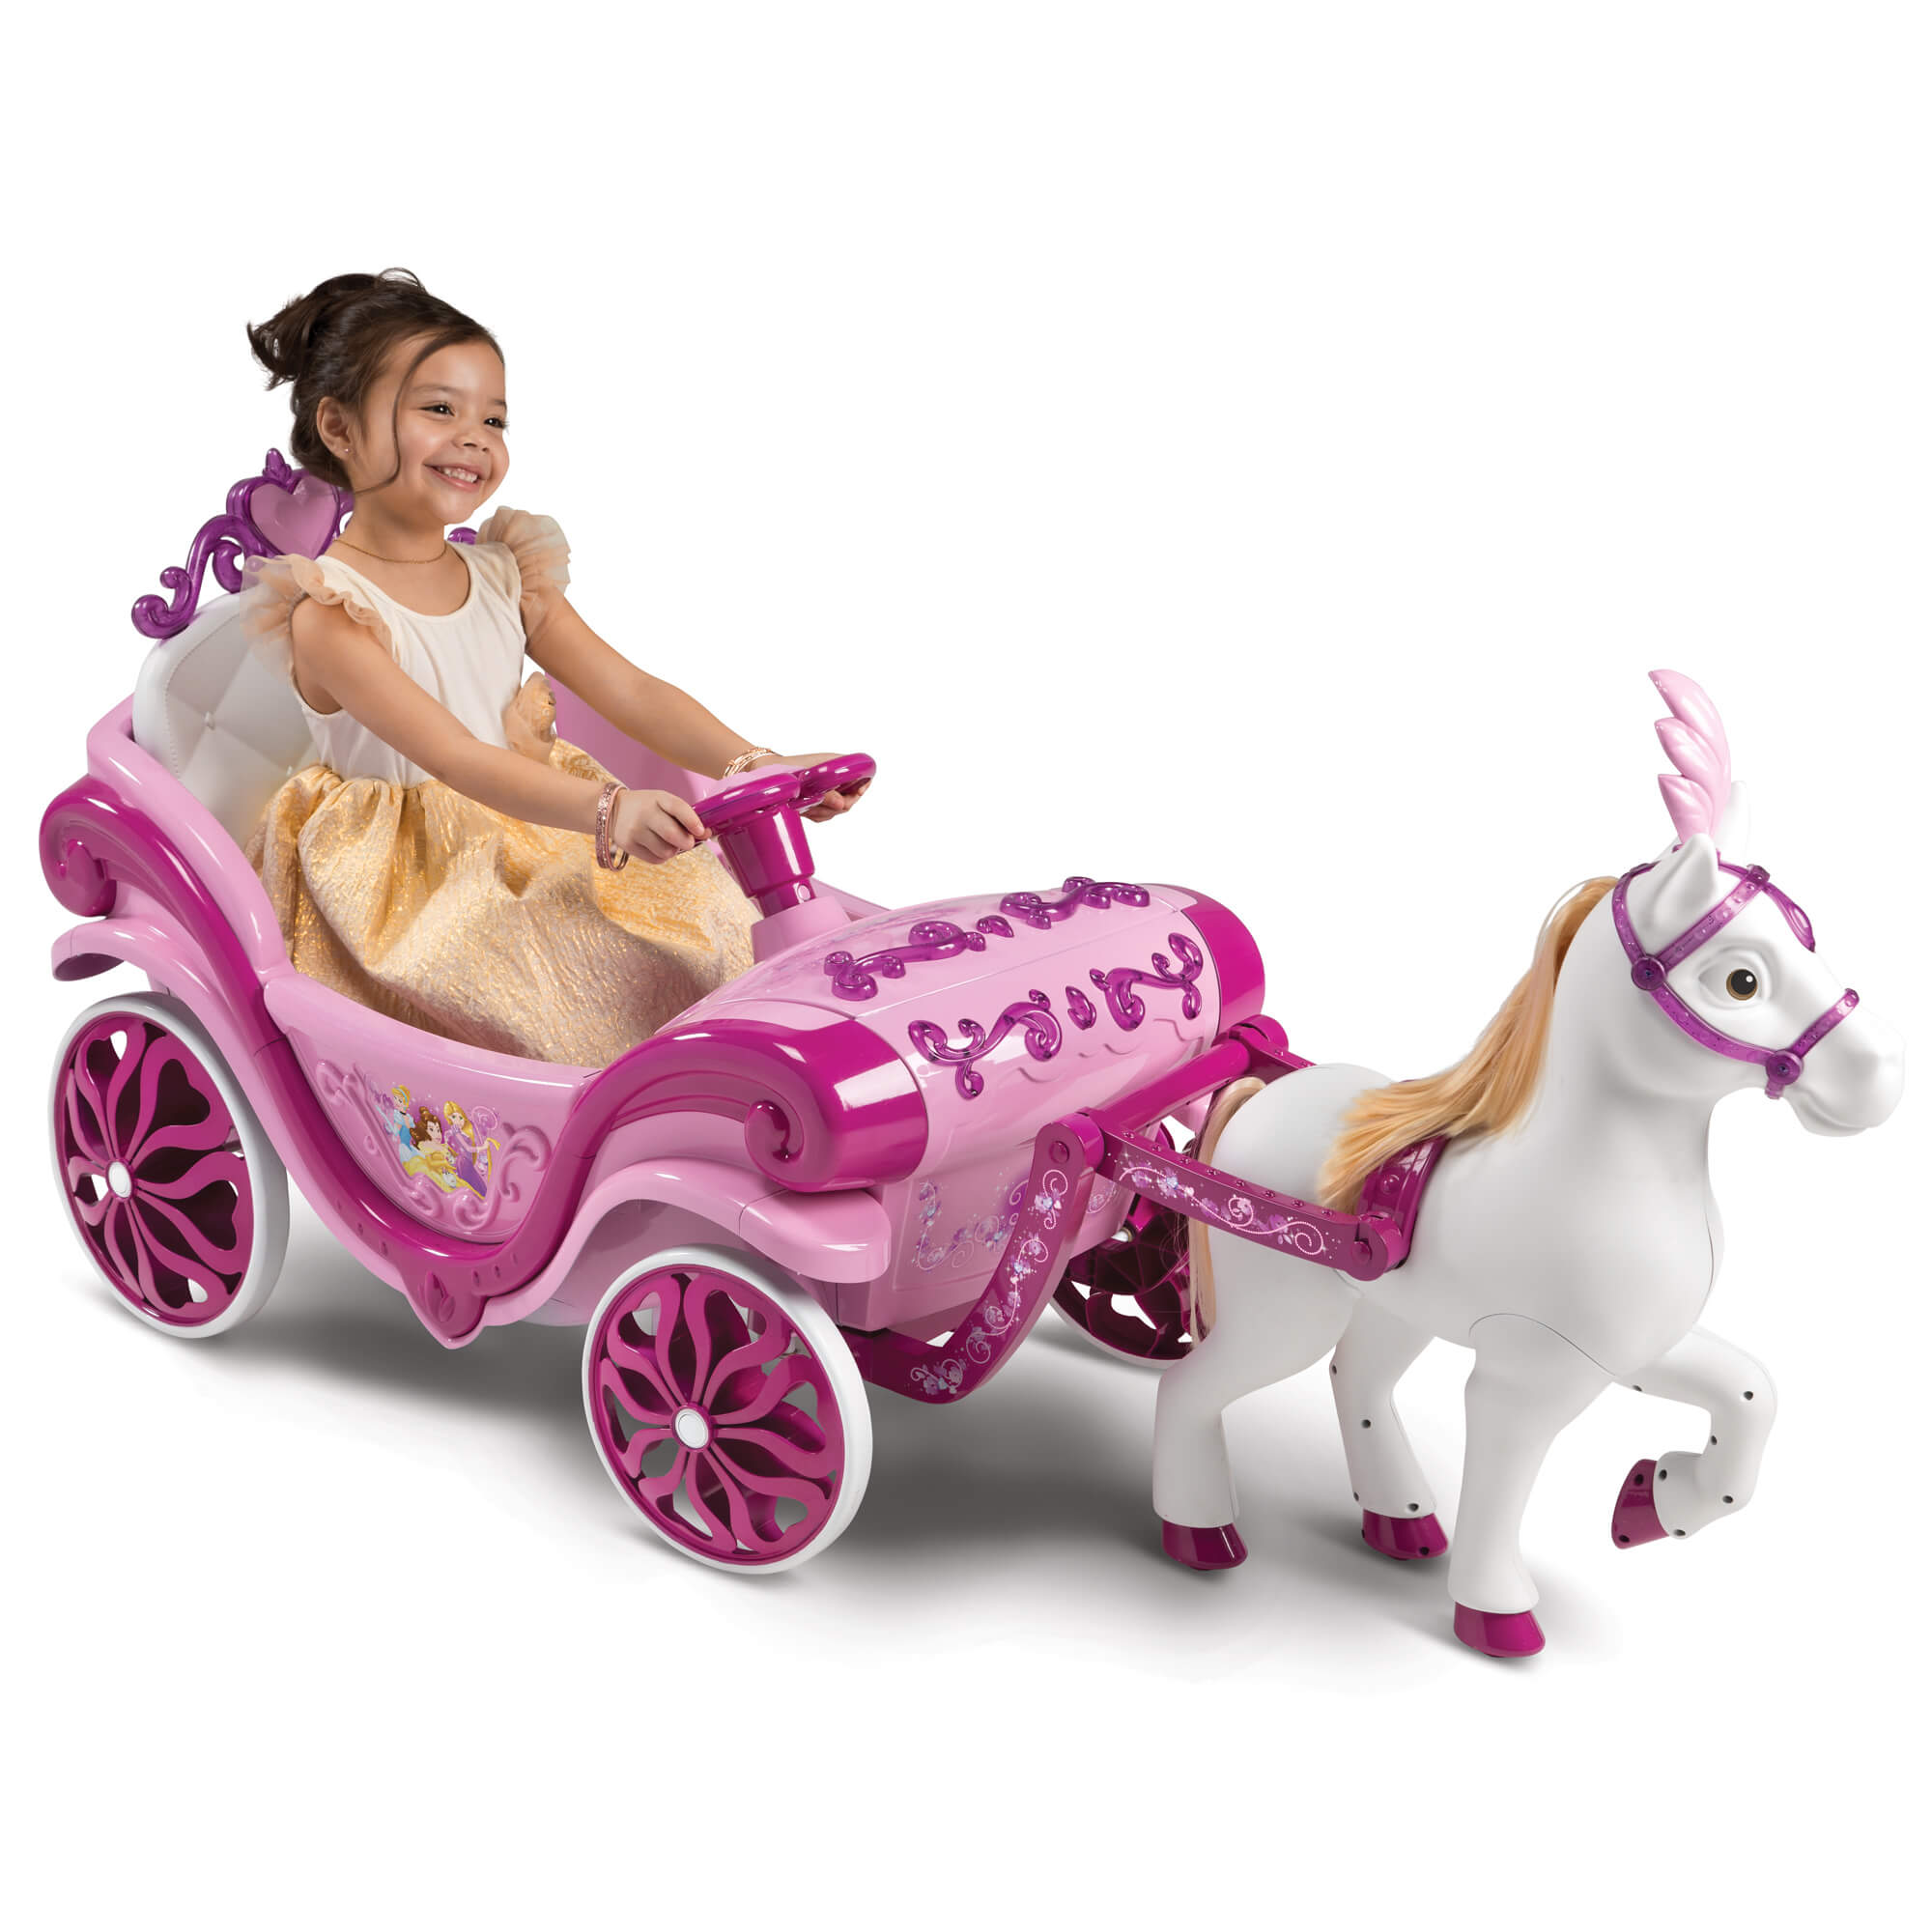 Disney Princess Girls Royal Horse and Carriage Girls Ride-On Toy by Huffy by Huffy